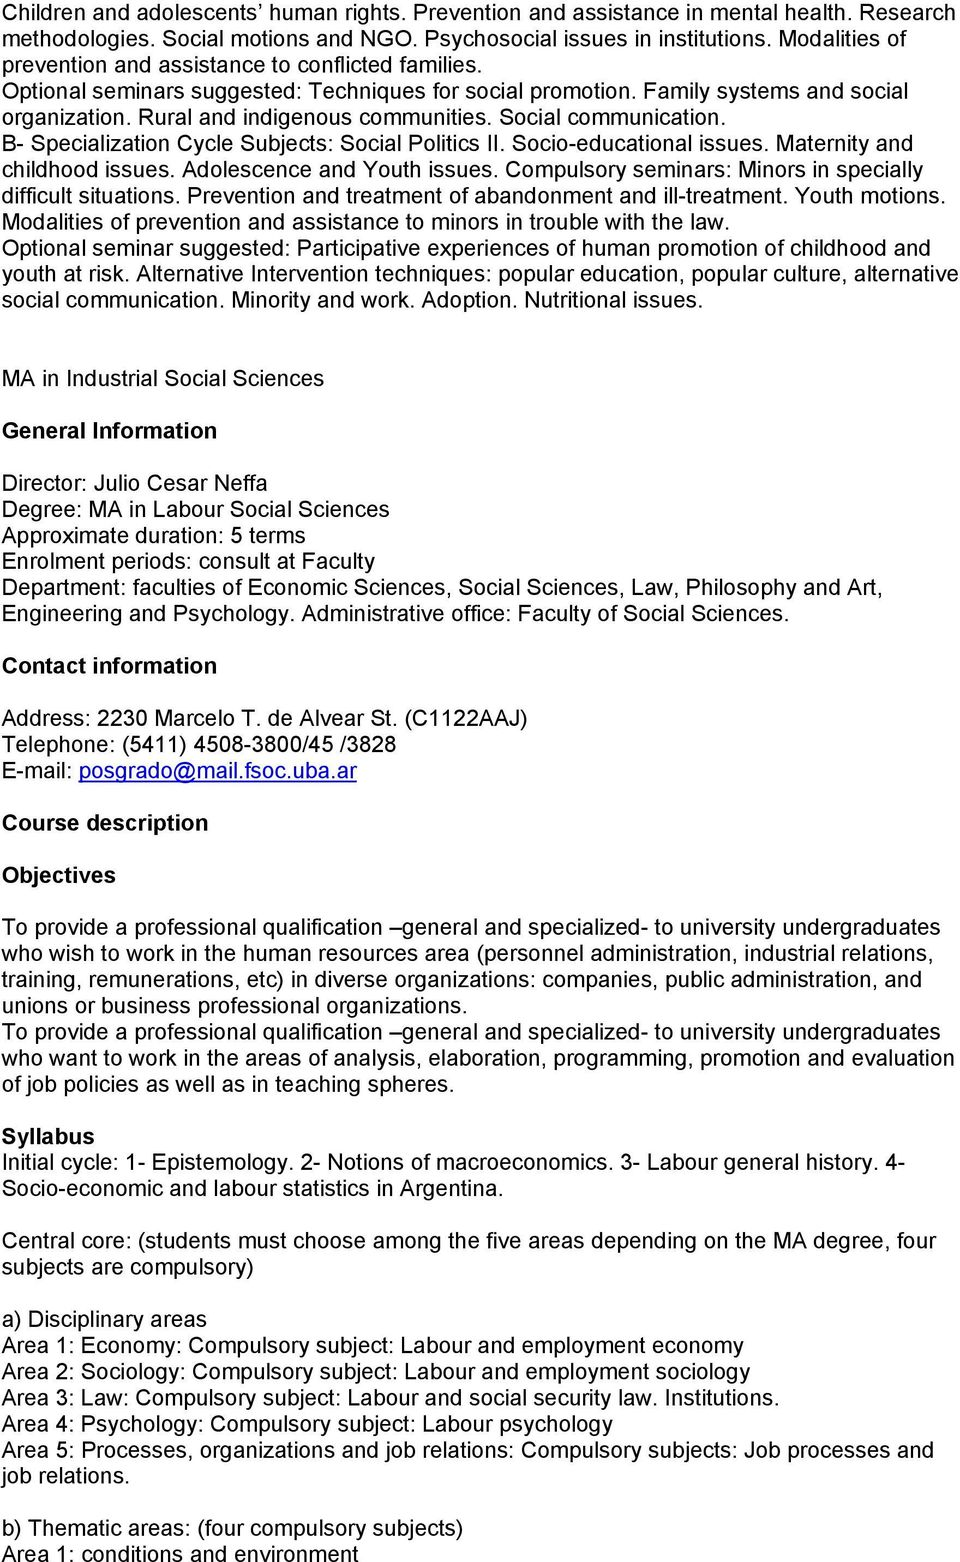 Social communication. B- Specialization Cycle Subjects: Social Politics II. Socio-educational issues. Maternity and childhood issues. Adolescence and Youth issues.